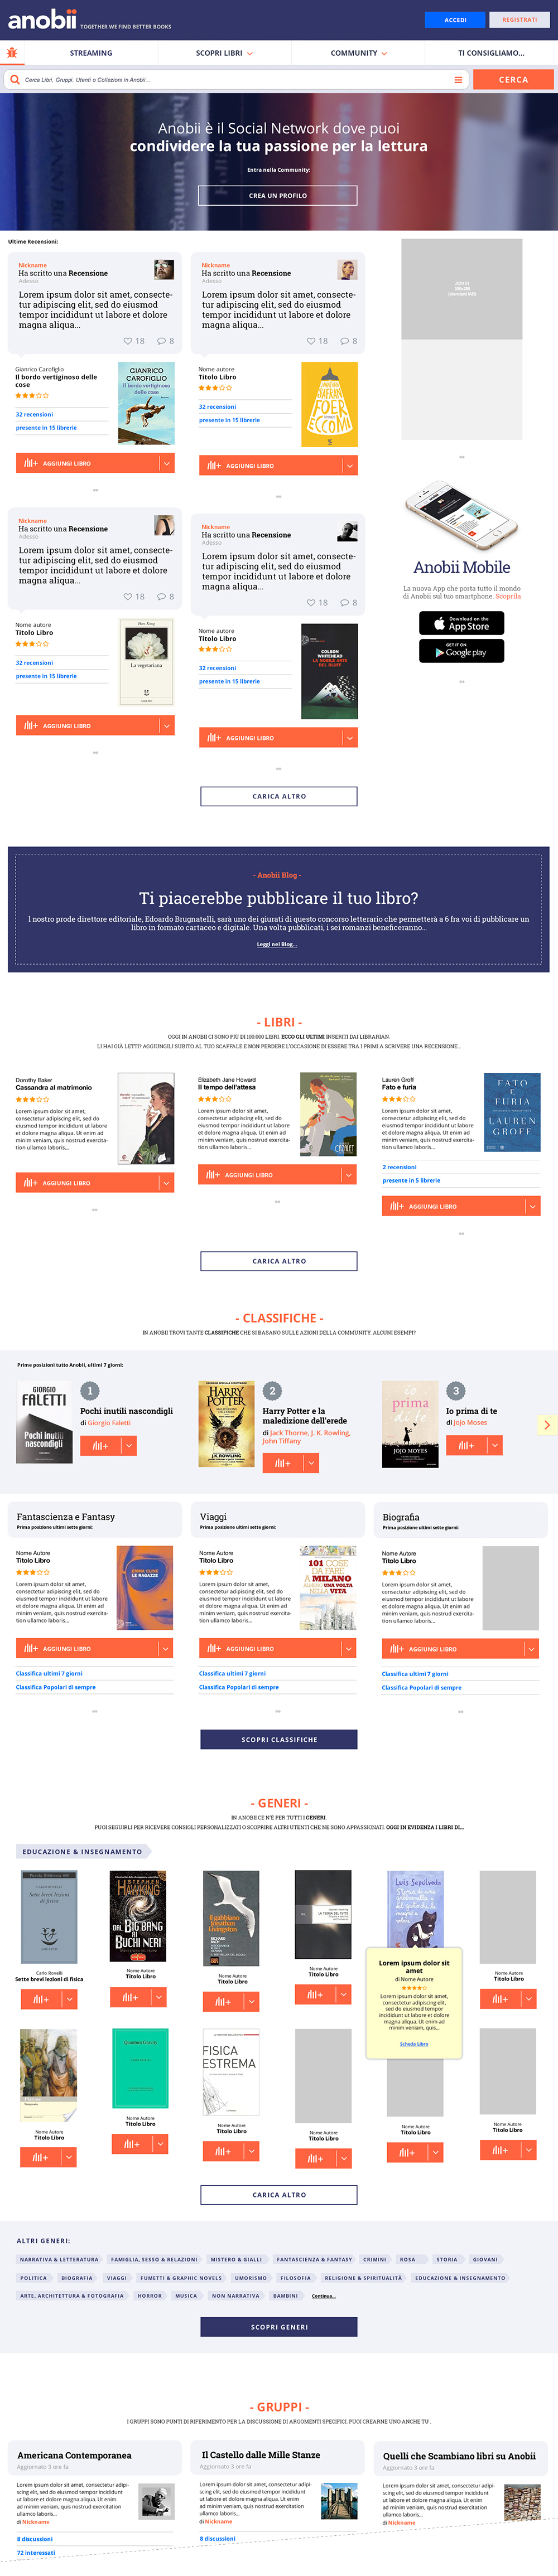 anobii social network redesign books library UGC